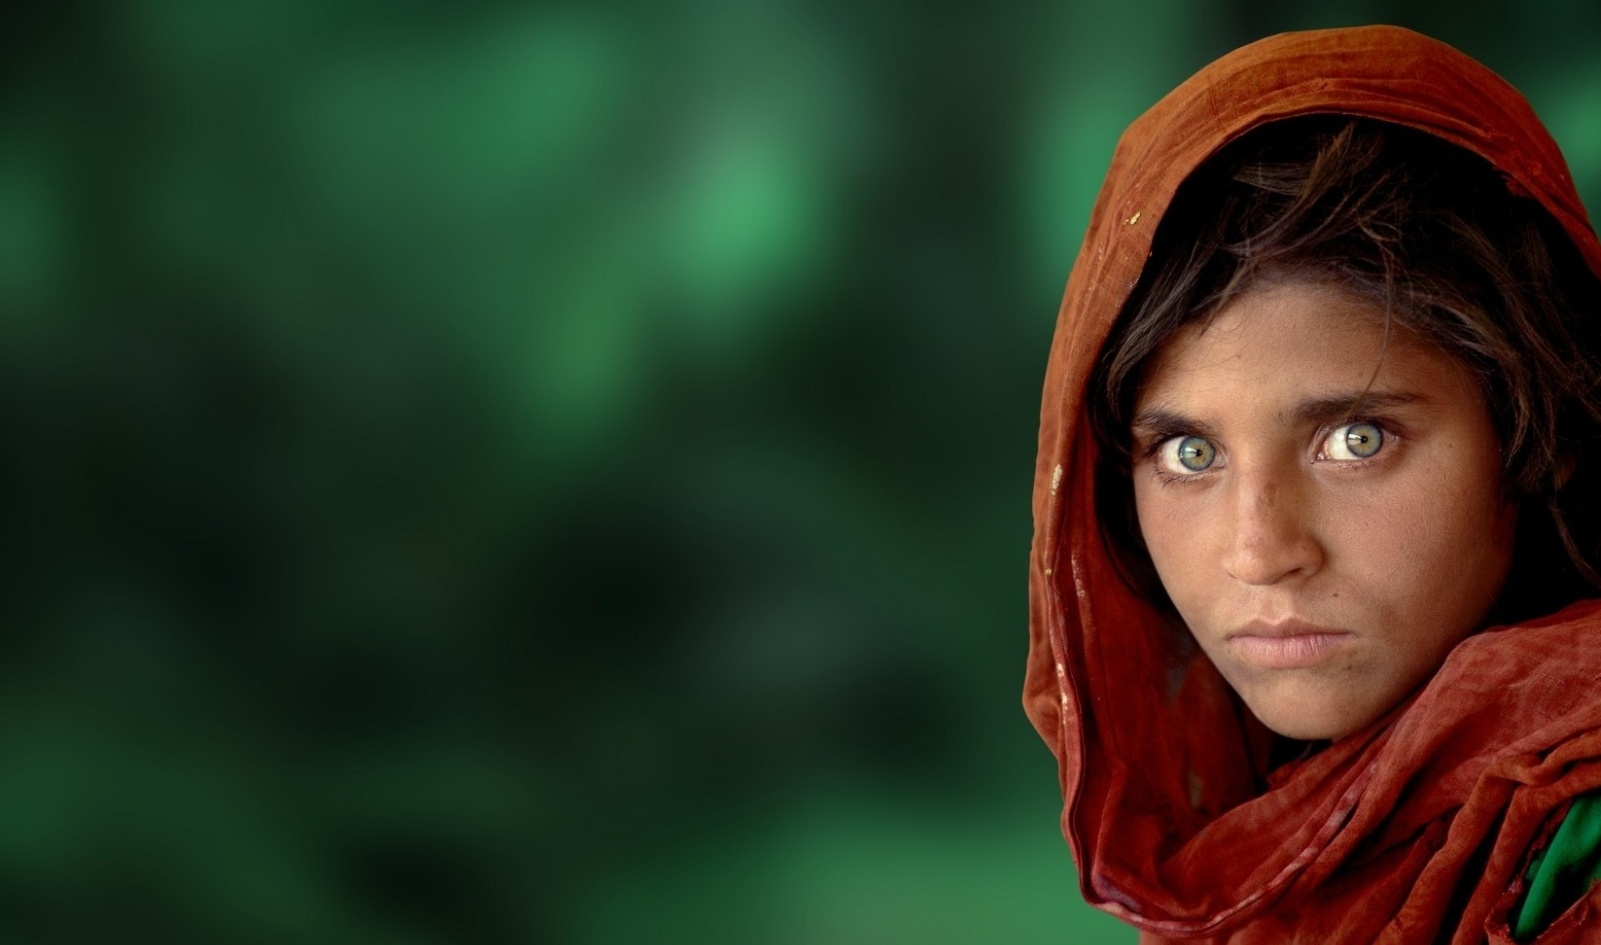 Afghan girl photo wallpapers and images - wallpapers, pictures, photos